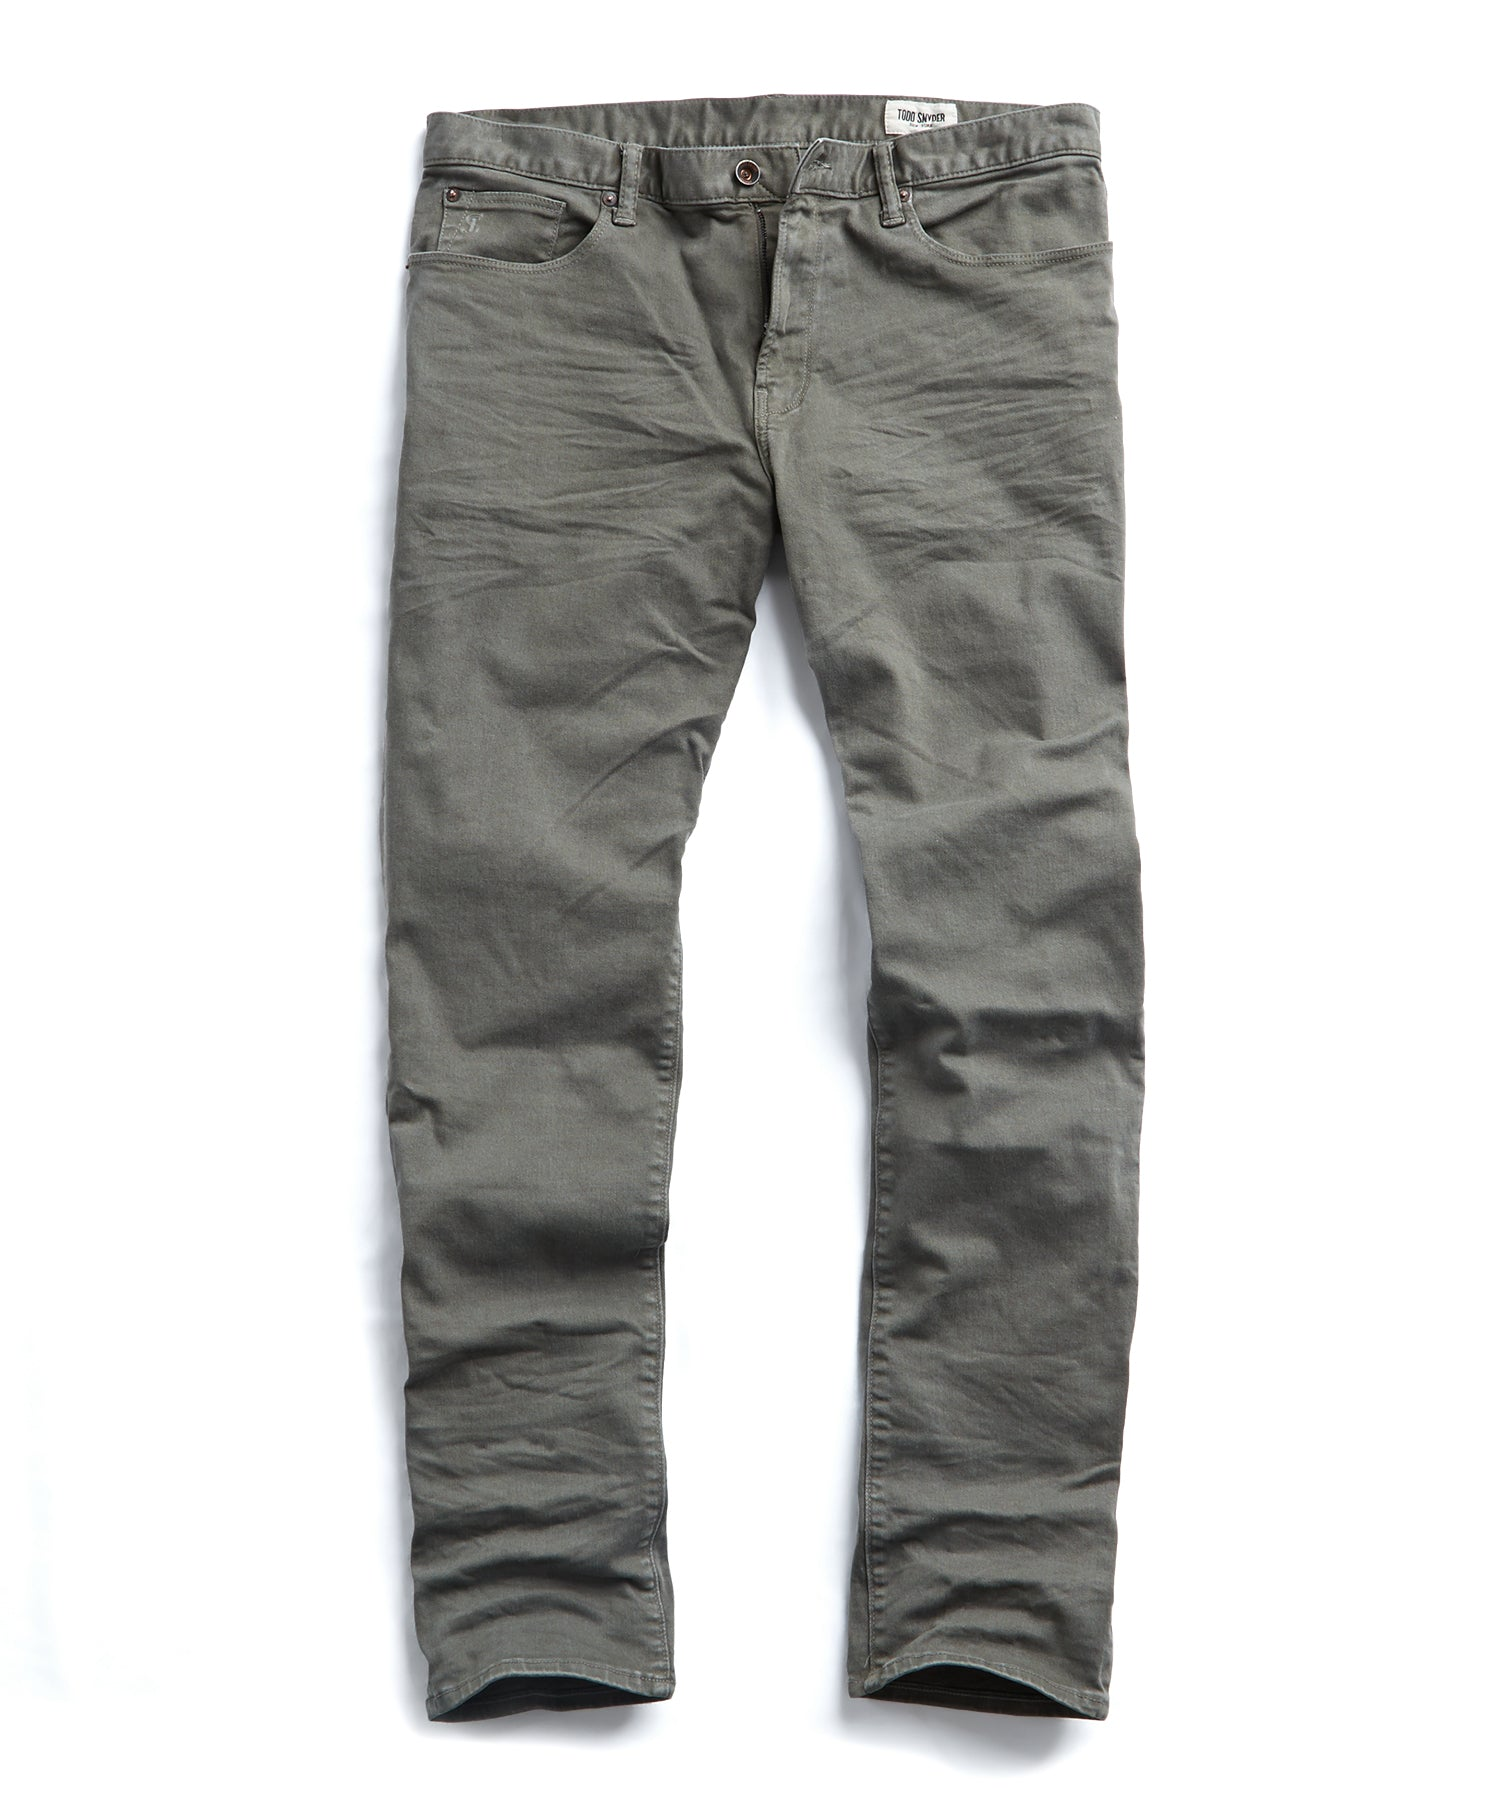 Slim Fit 5-Pocket Garment-Dyed Stretch Twill in Moss